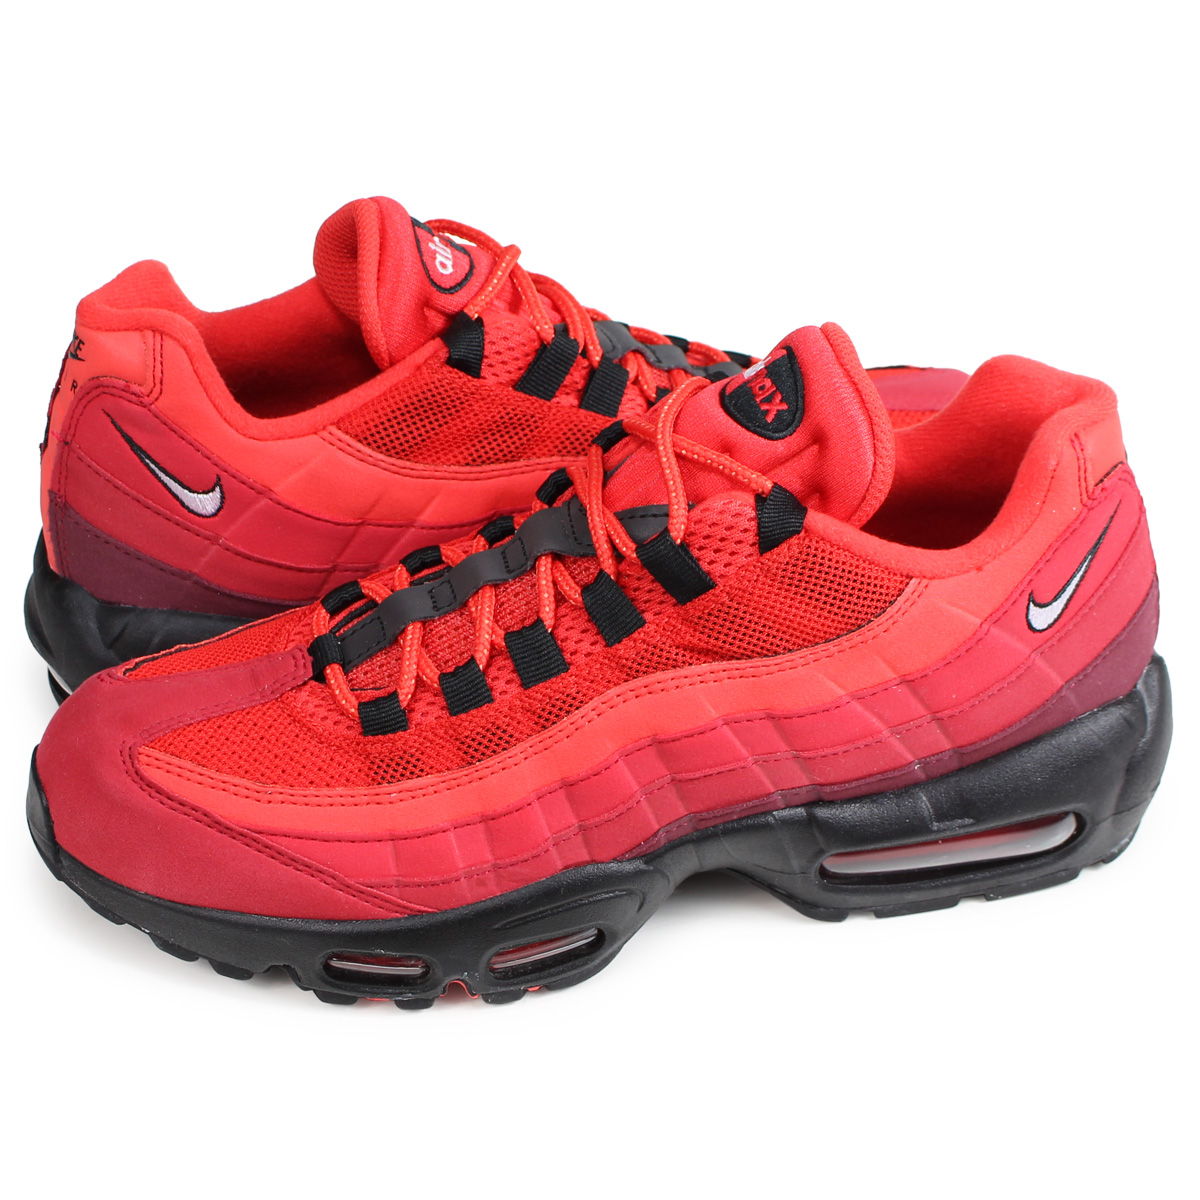 Nike NIKE Air Max 95 sneakers men gap Dis AIR MAX 95 OG red red AT2865 600 [load planned reentry load in reservation product 110 containing]